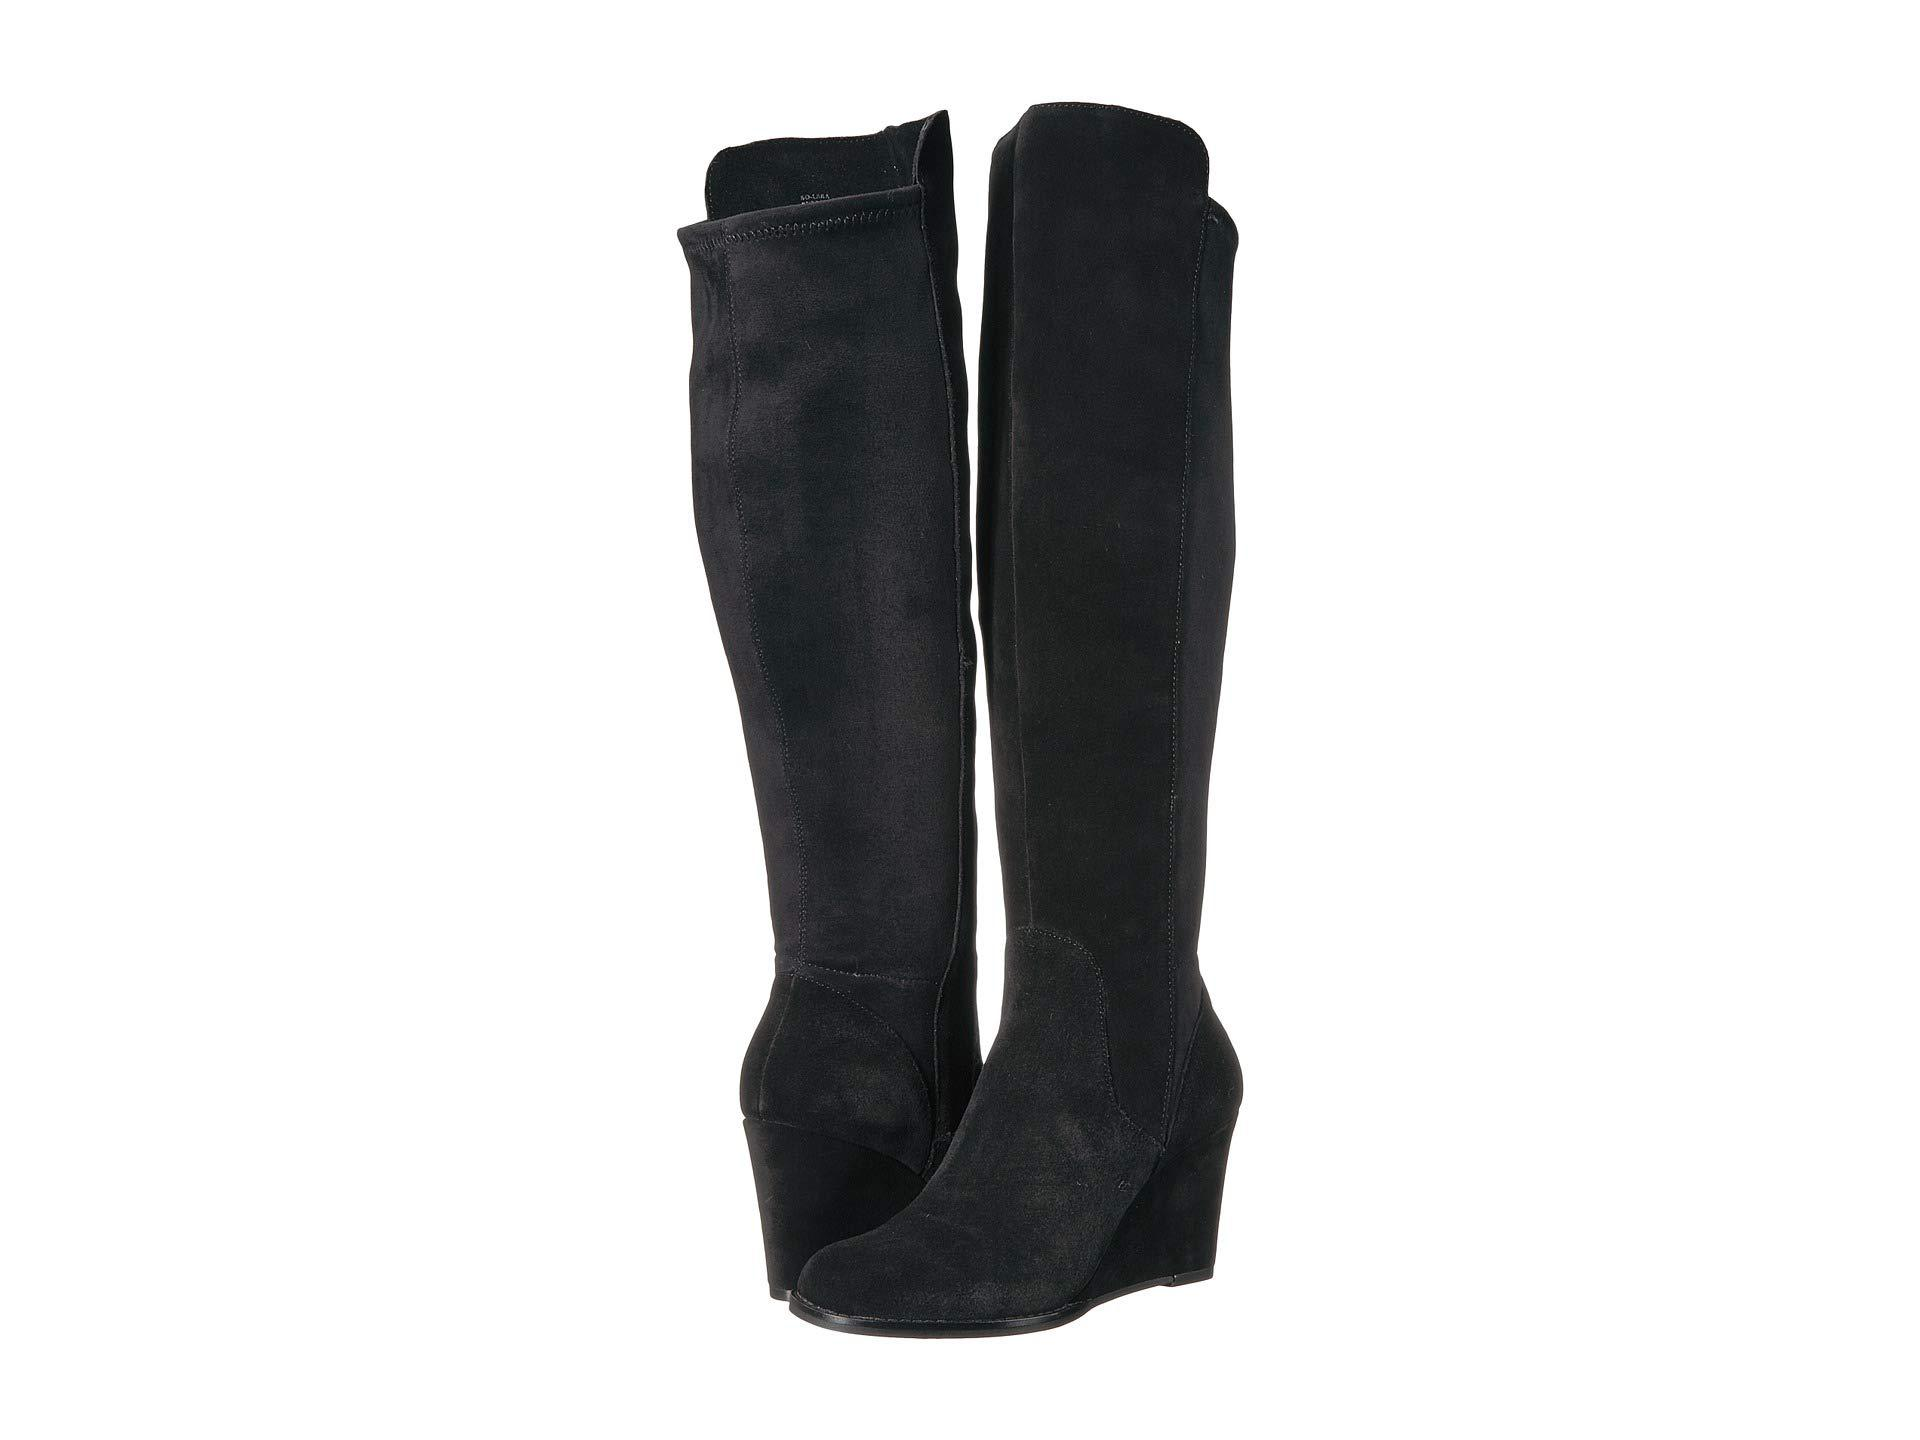 4f6047e592f Lyst - Sole Society Laila (taupe) Women s Boots in Black